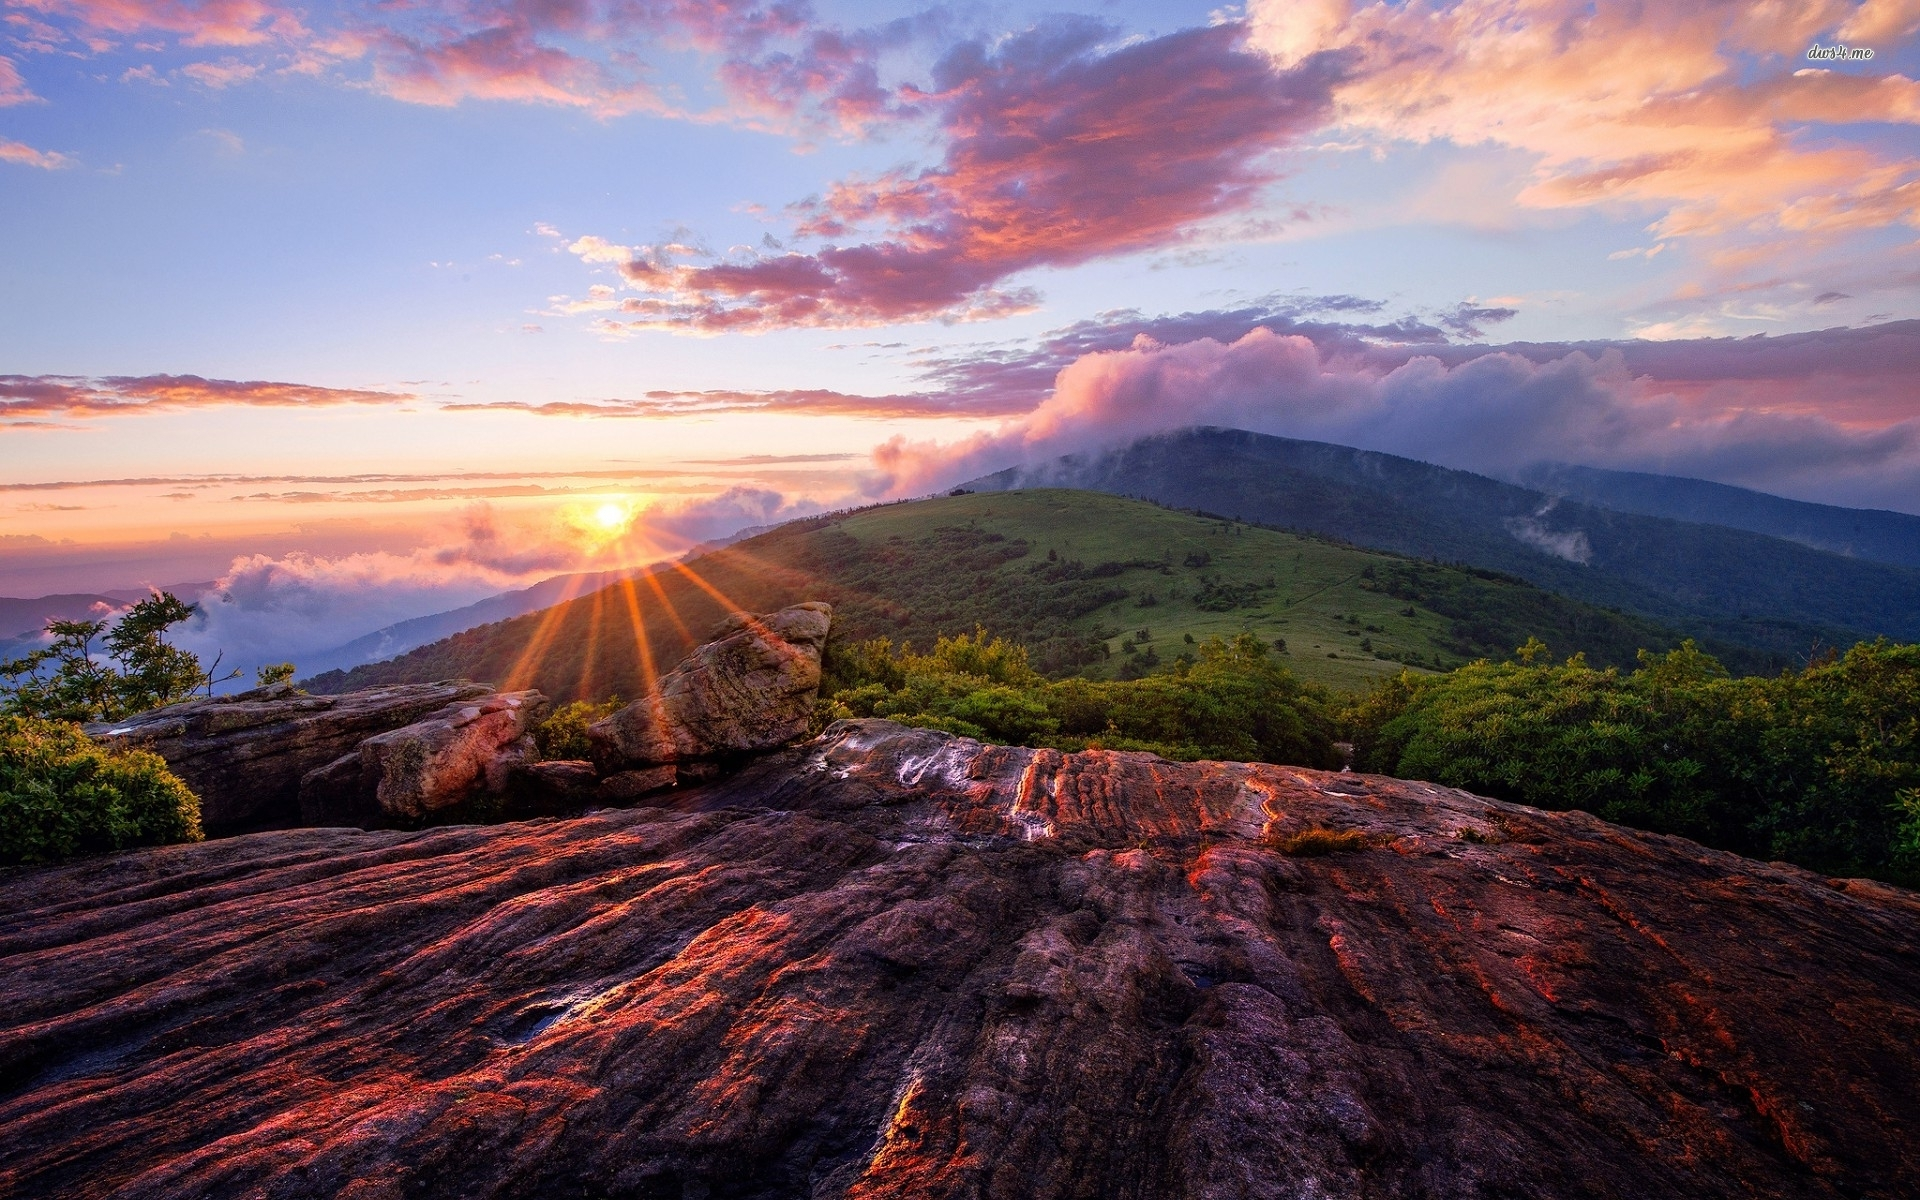 Sunset In The Mountains Wallpapers High Quality   Download ...